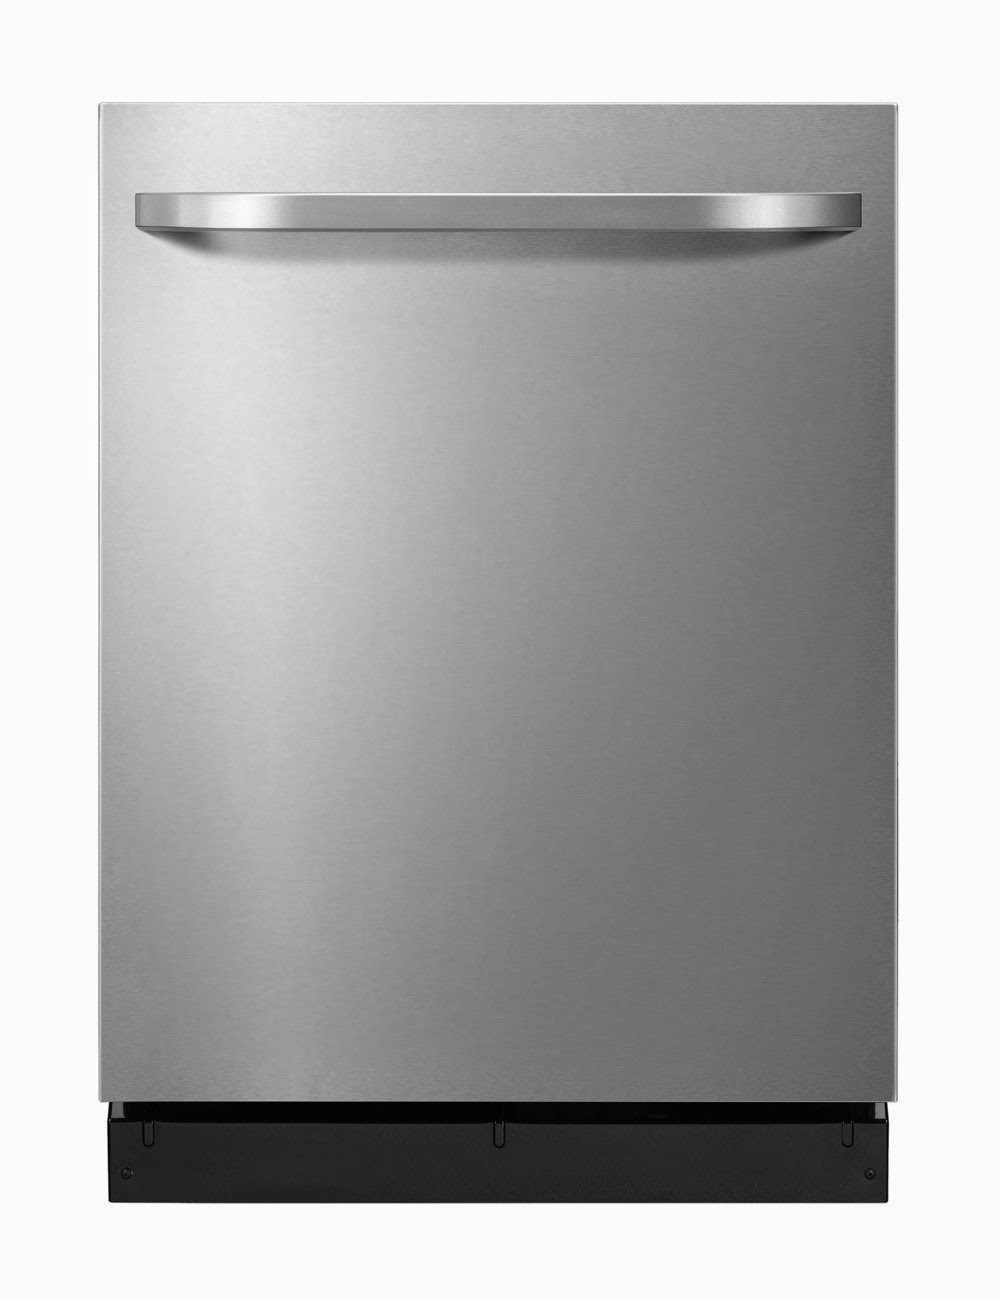 Stainless Steel Haier Portable Dishwasher